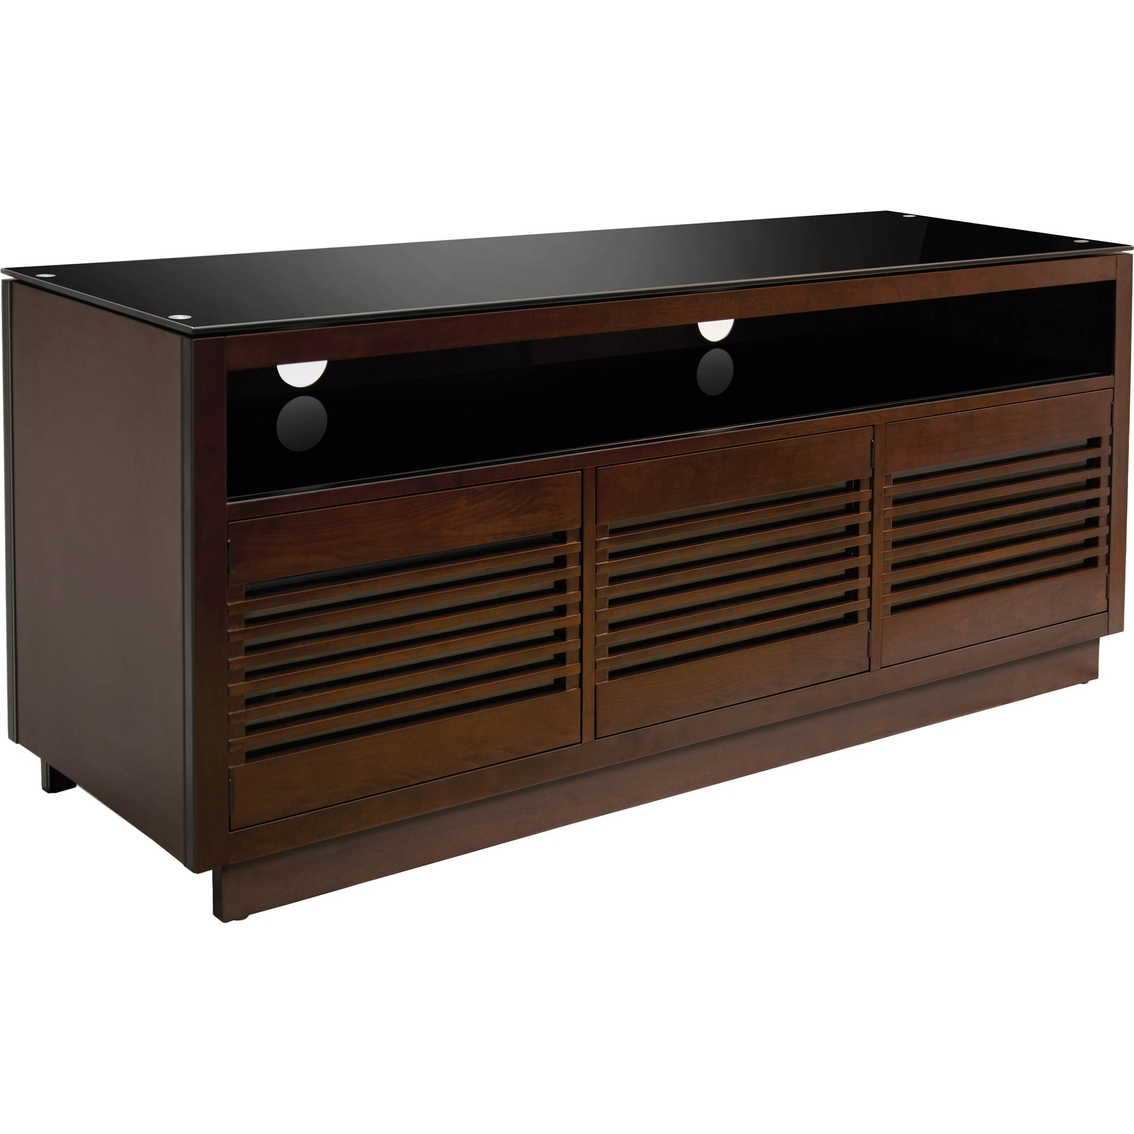 Bellu0027o Aim Wood Metal And Glass Audio Video Cabinet TV Stand